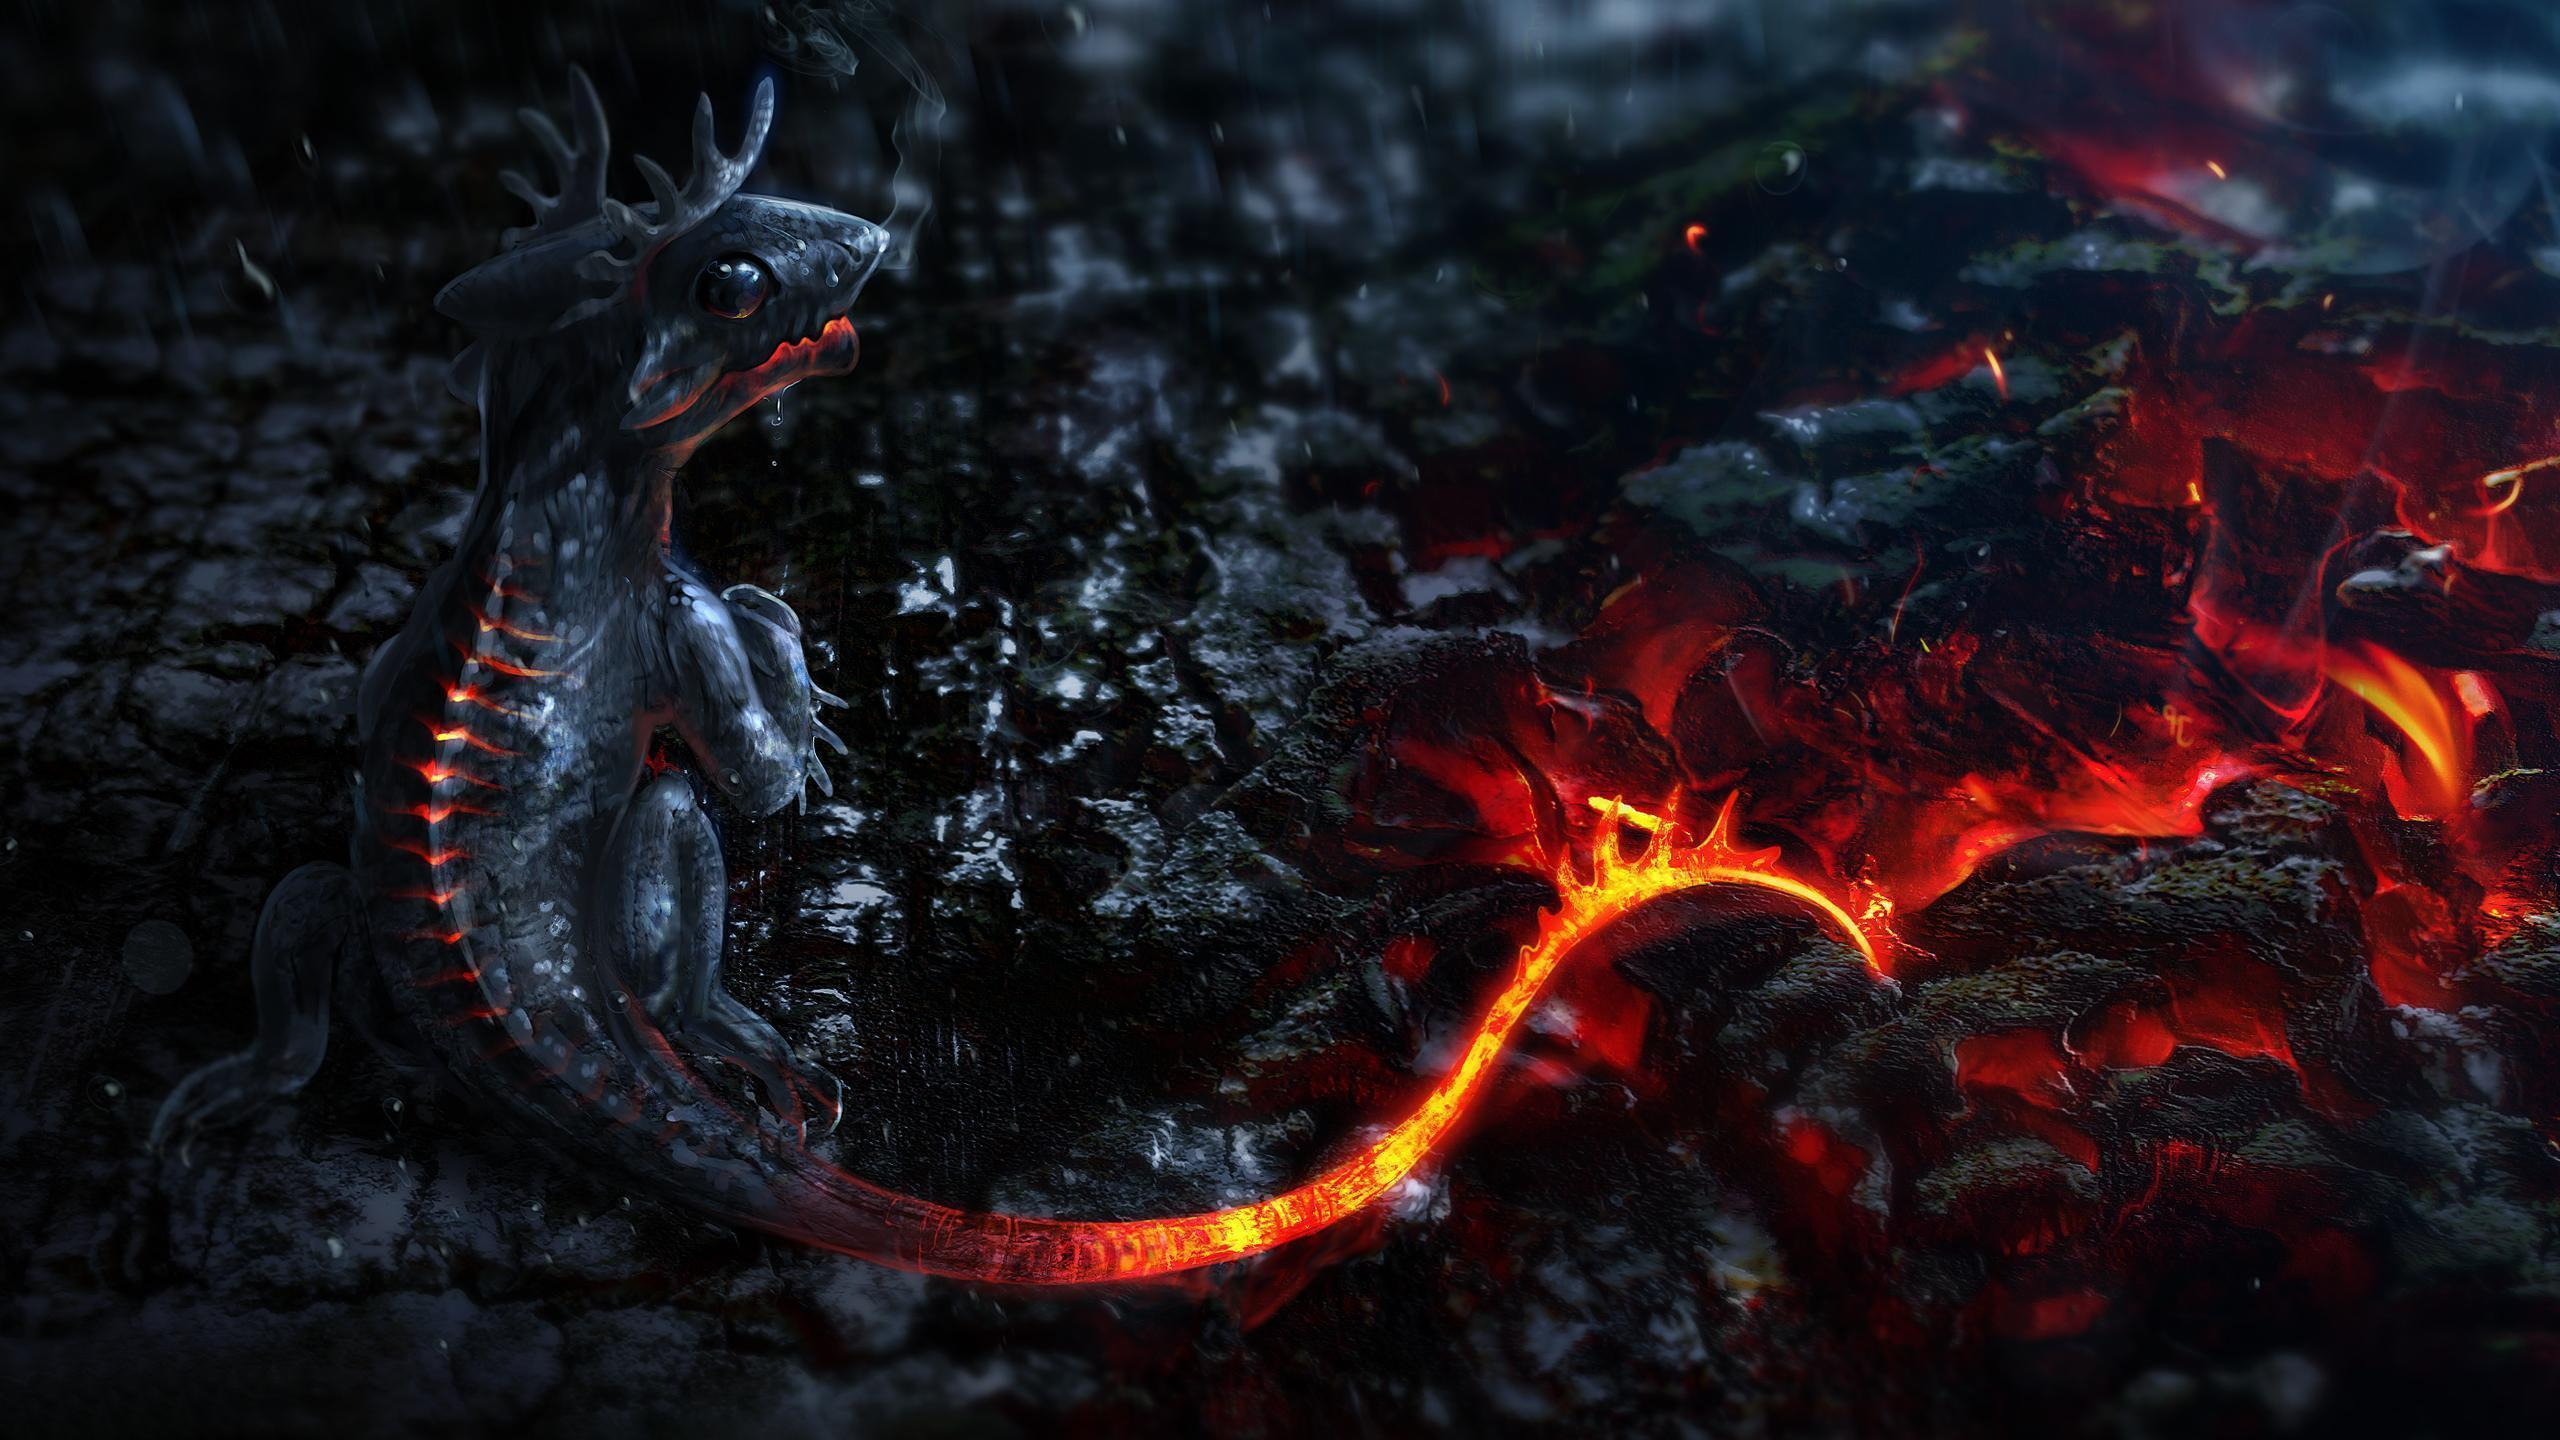 dragon wallpaper widescreen high resolution - photo #30